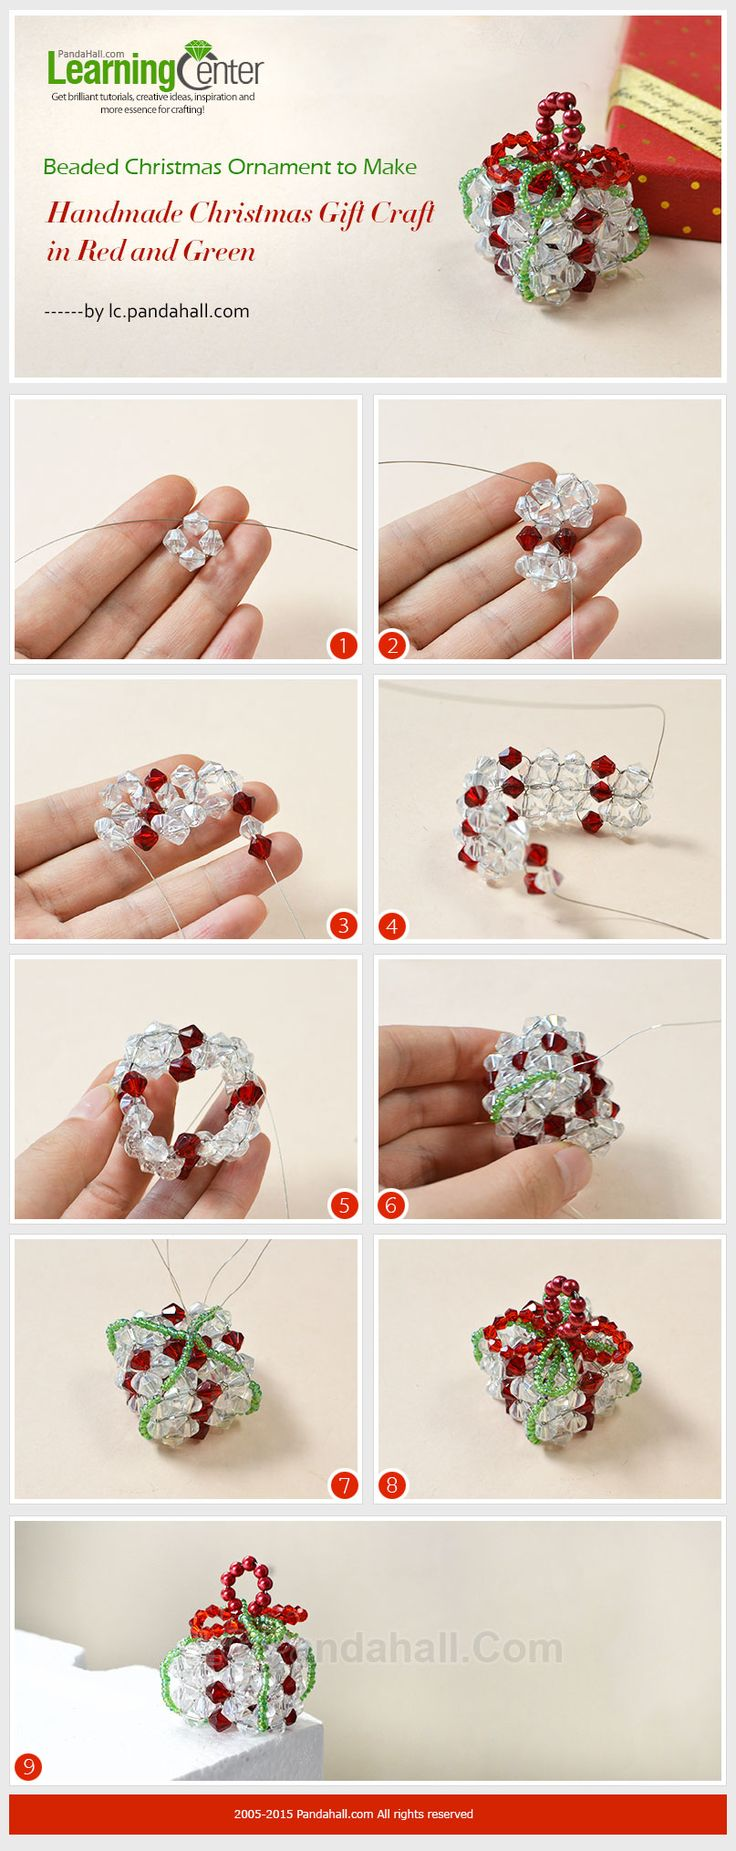 101 handmade christmas ornament ideas - Beaded Christmas Ornament To Make Handmade Christmas Gift Craft In Red And Green